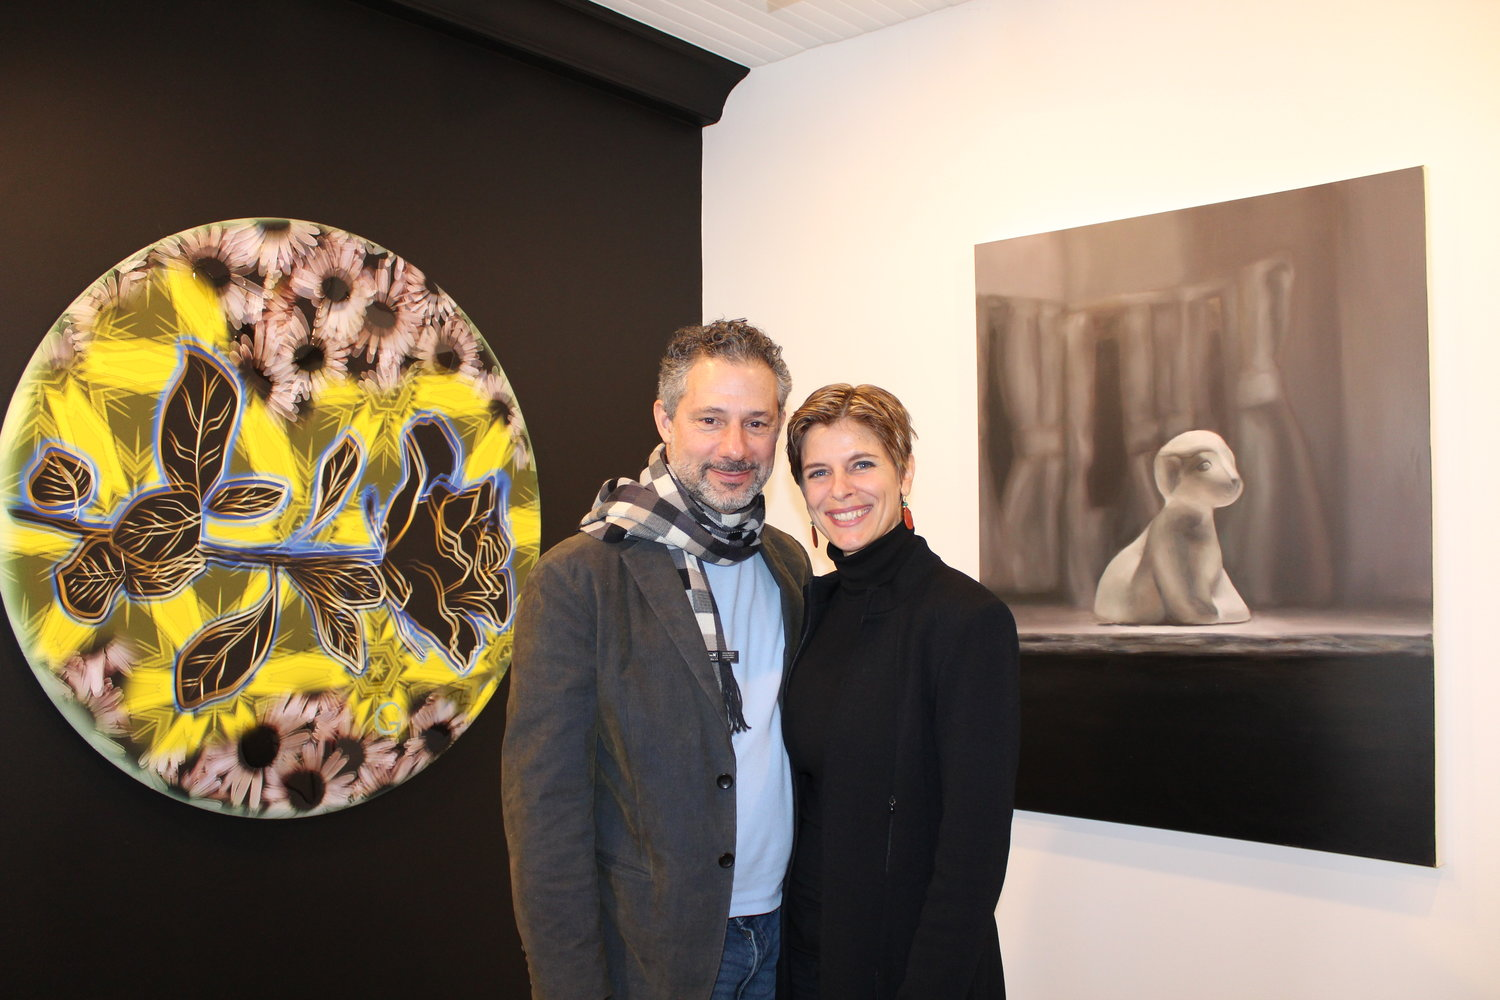 Mark Van Wagner and Tonja Pulfer at their Bellport Village art gallery, Marquis Projects, Inc. They aim to continue exhibiting marginalized and unknown talent of all ages.